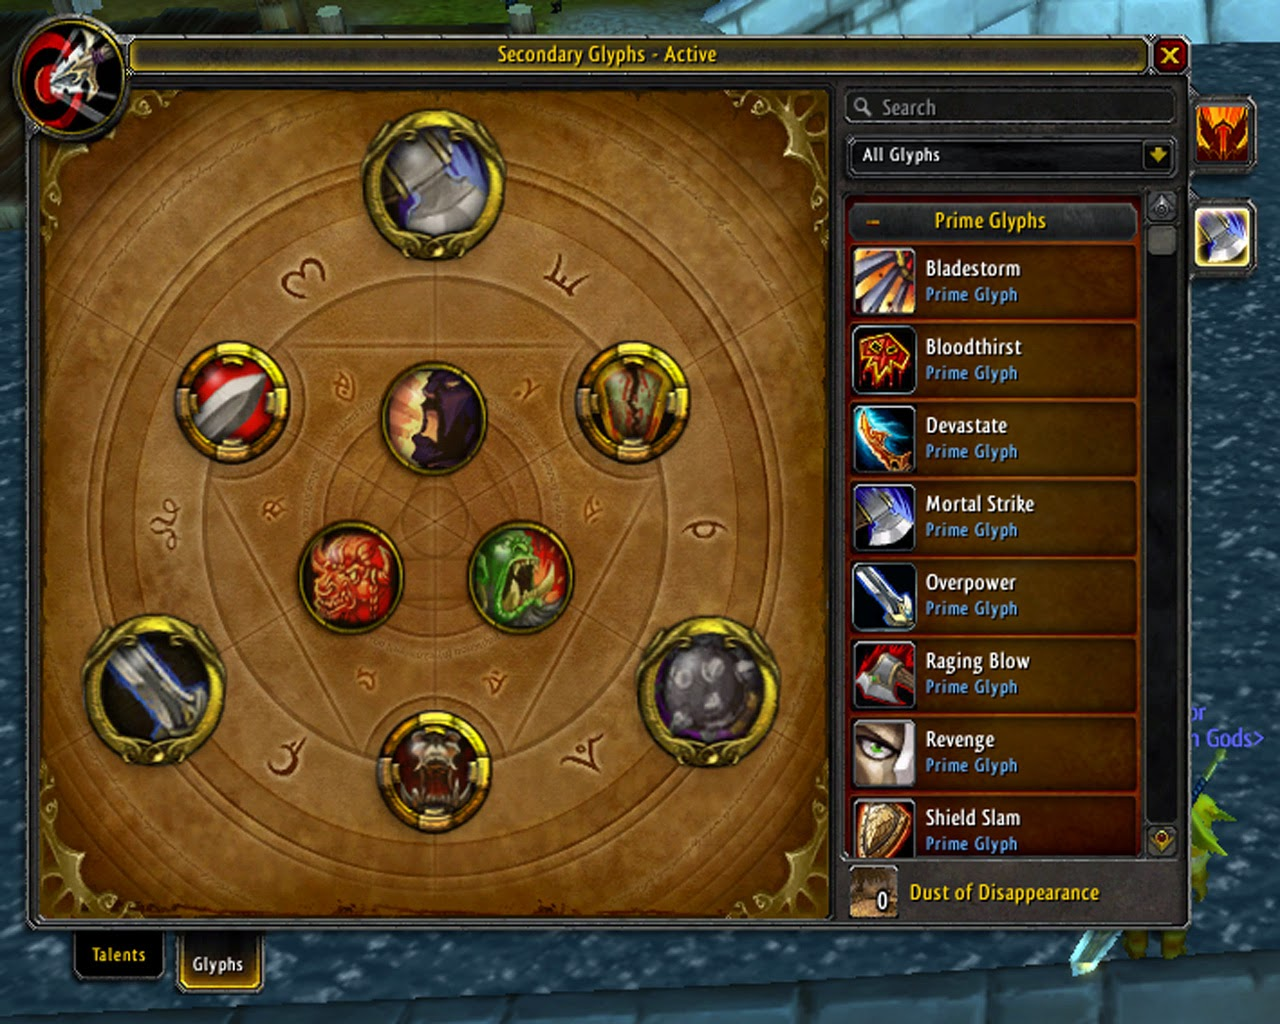 WoW Mortal - World of Warcraft Private Server - Legion, Cataclysm